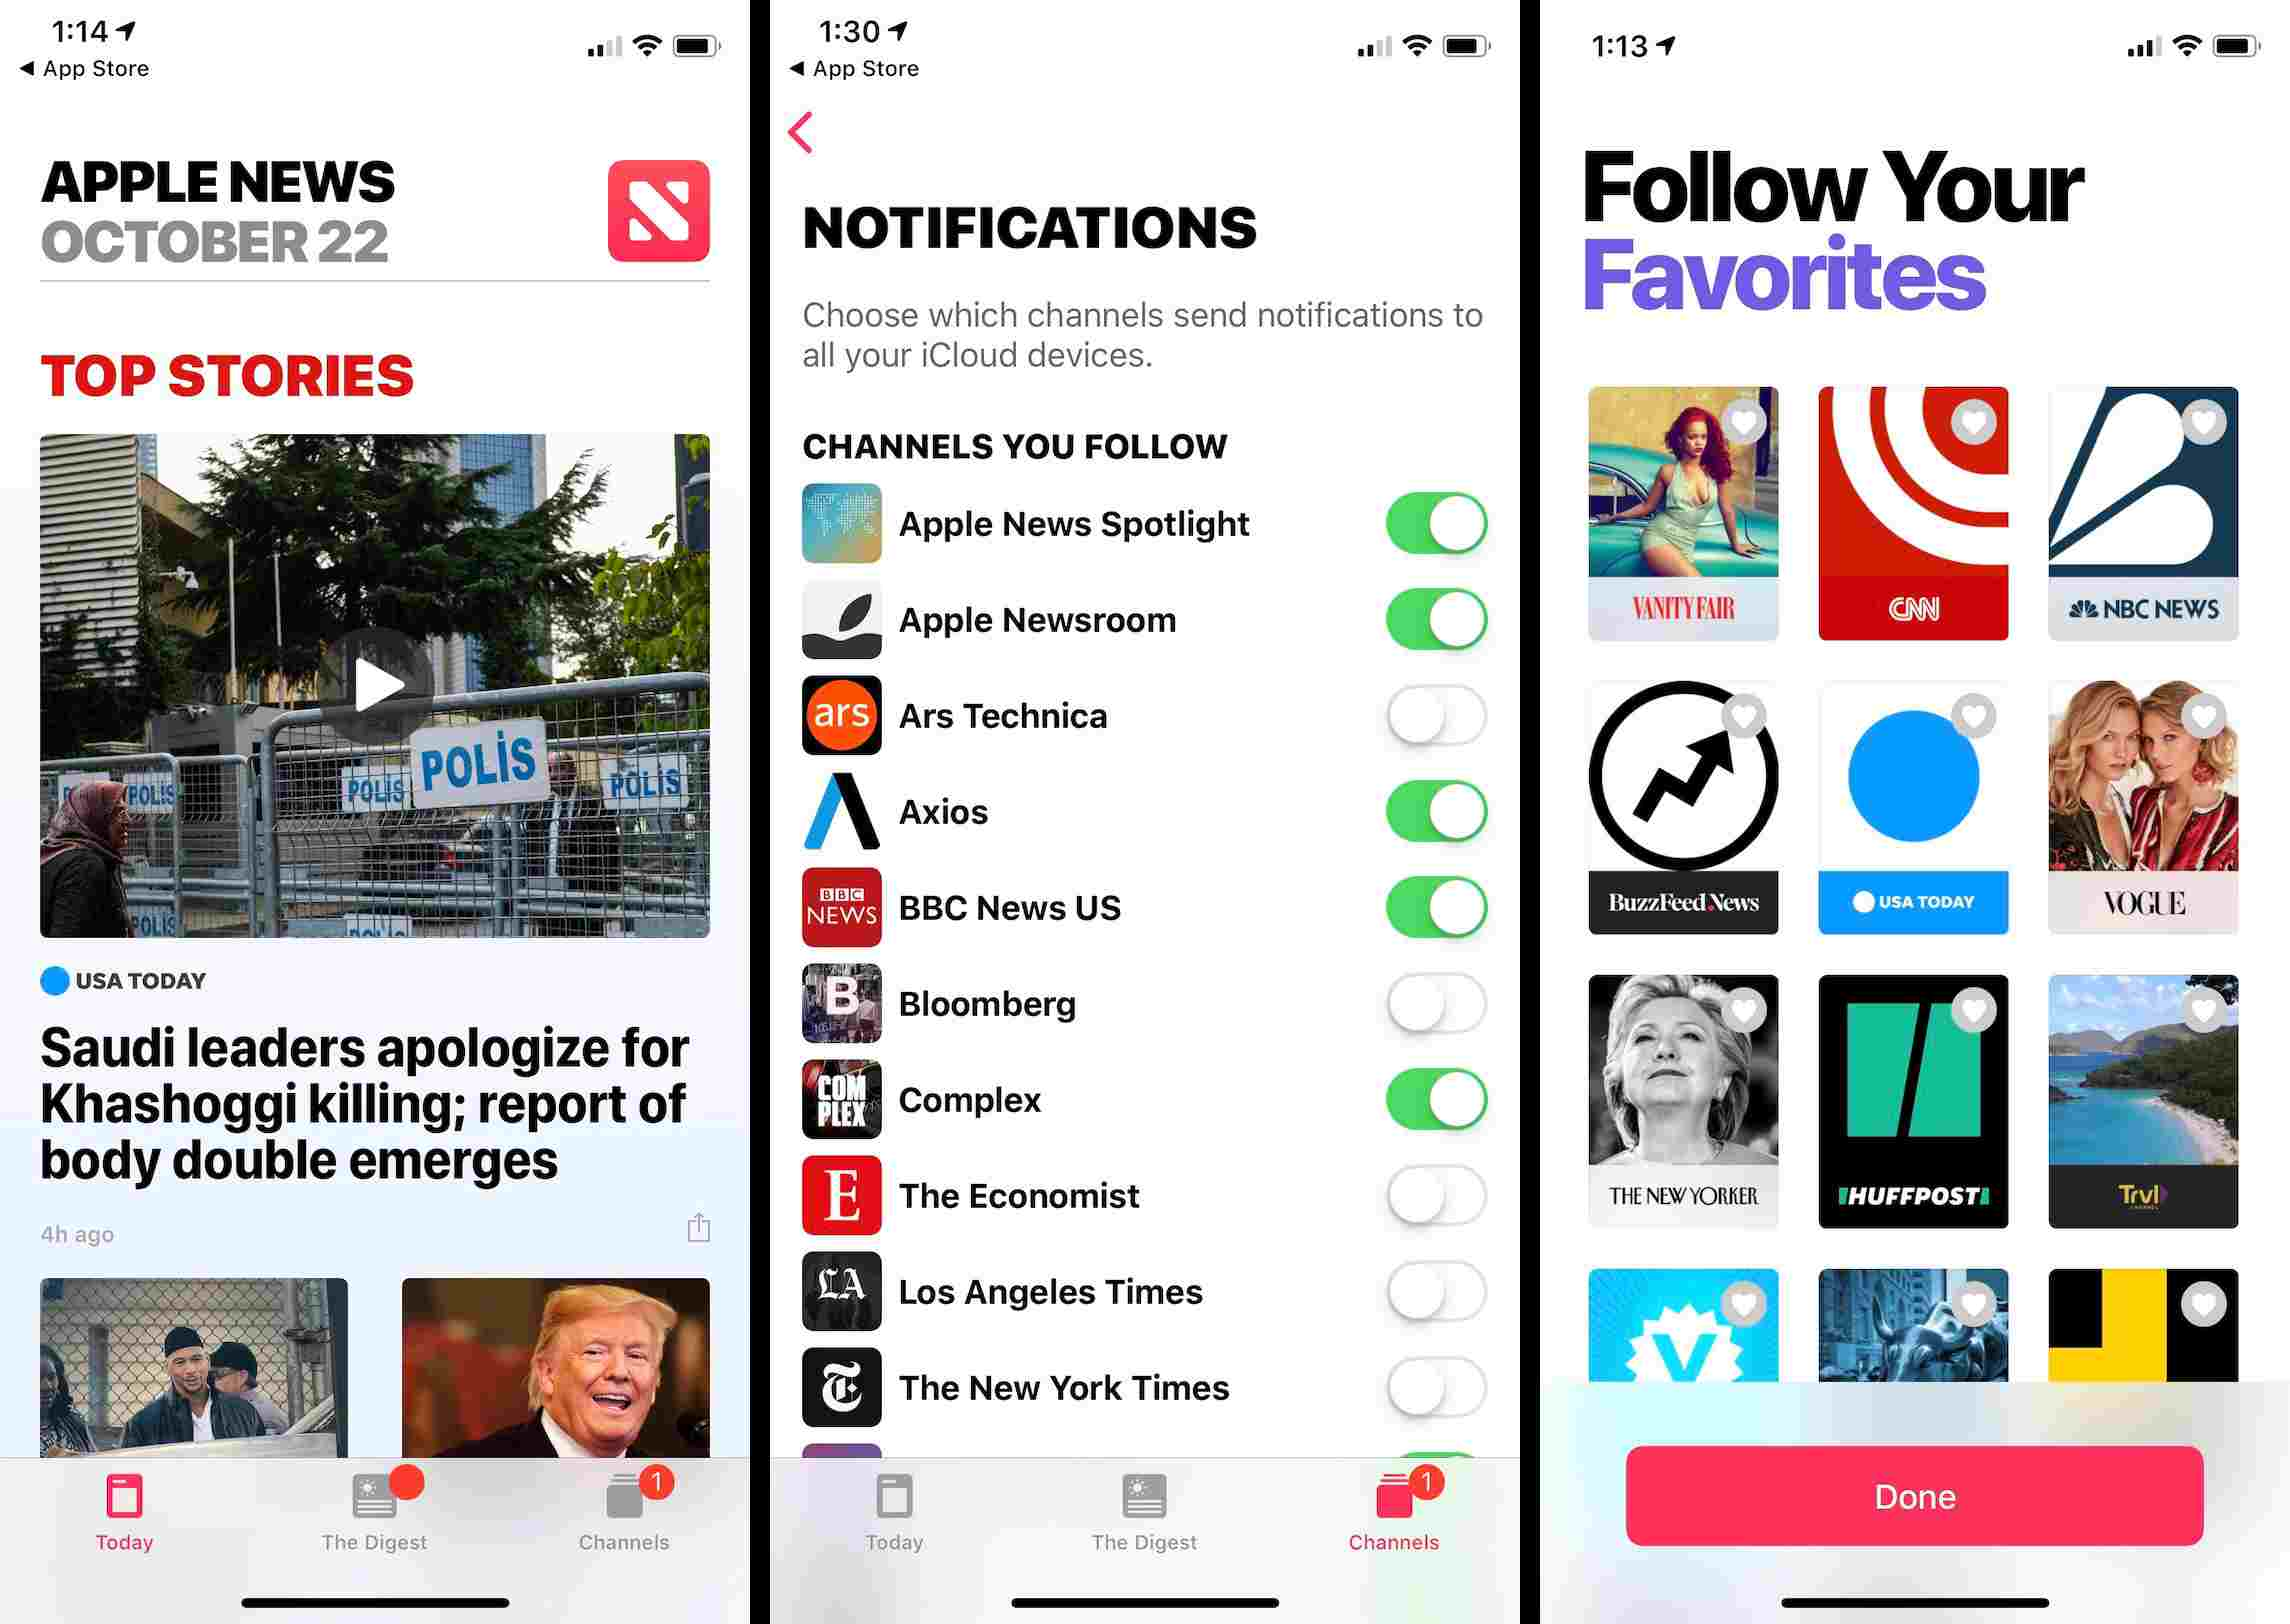 How to Use the Apple News App